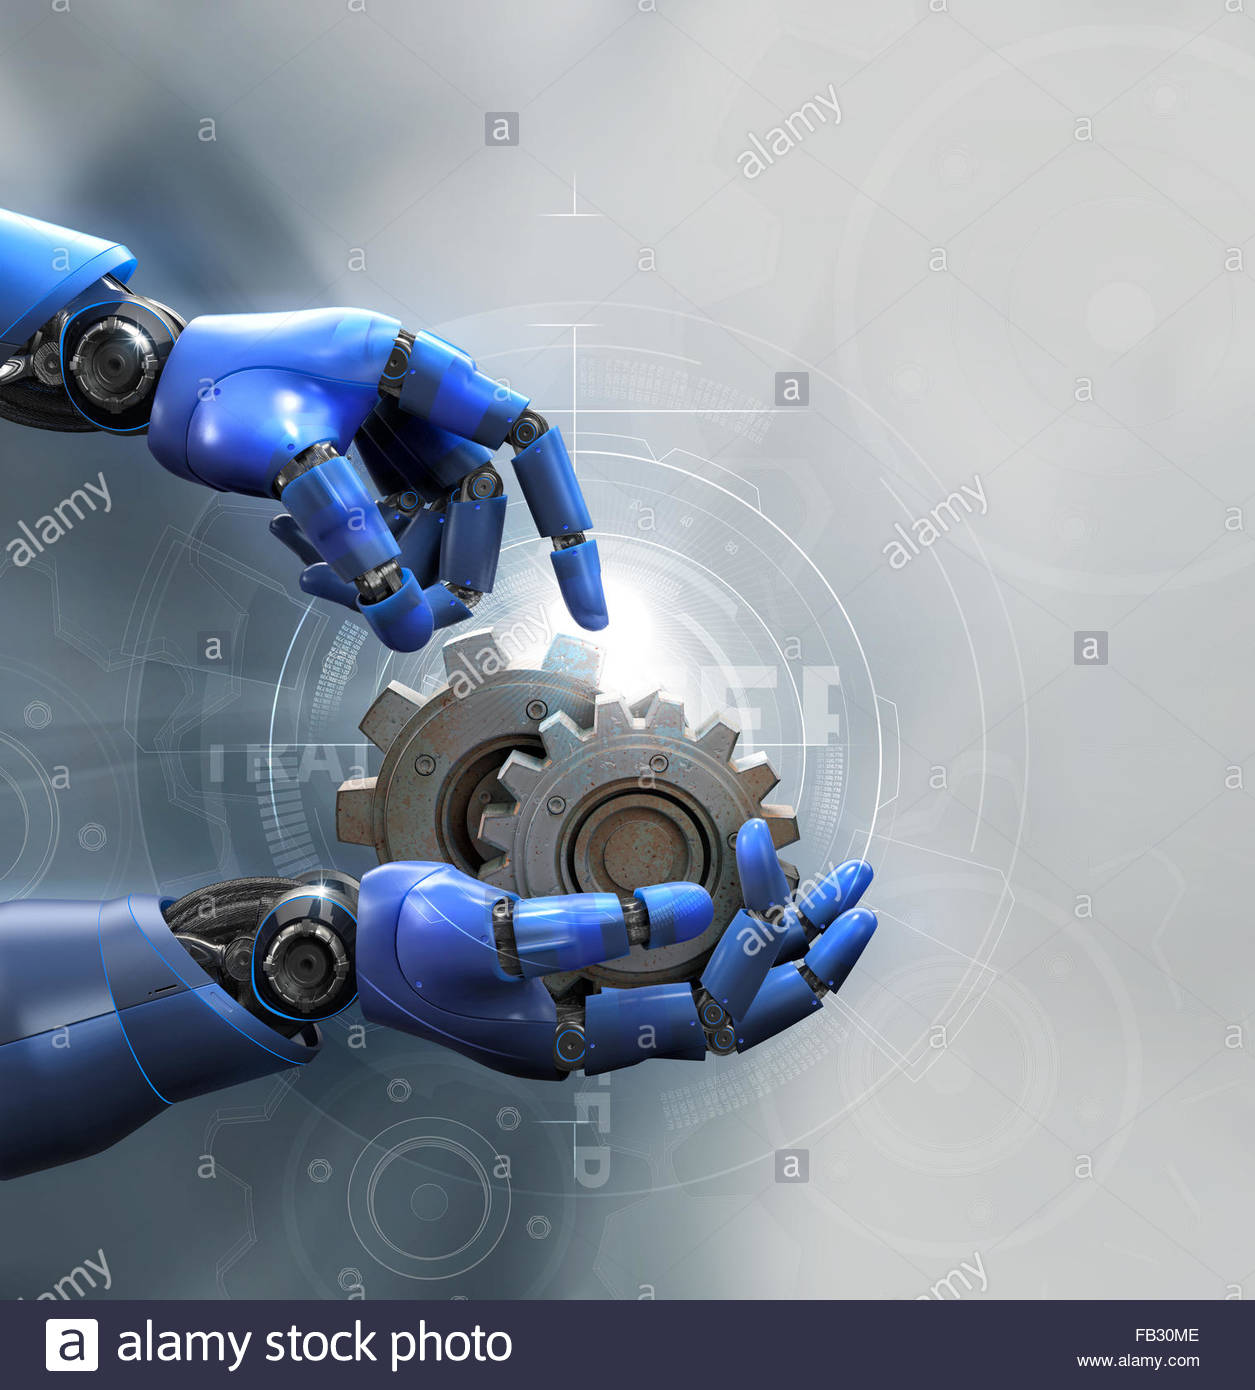 Robotic arms holding metal cogs over diagram - Stock Image